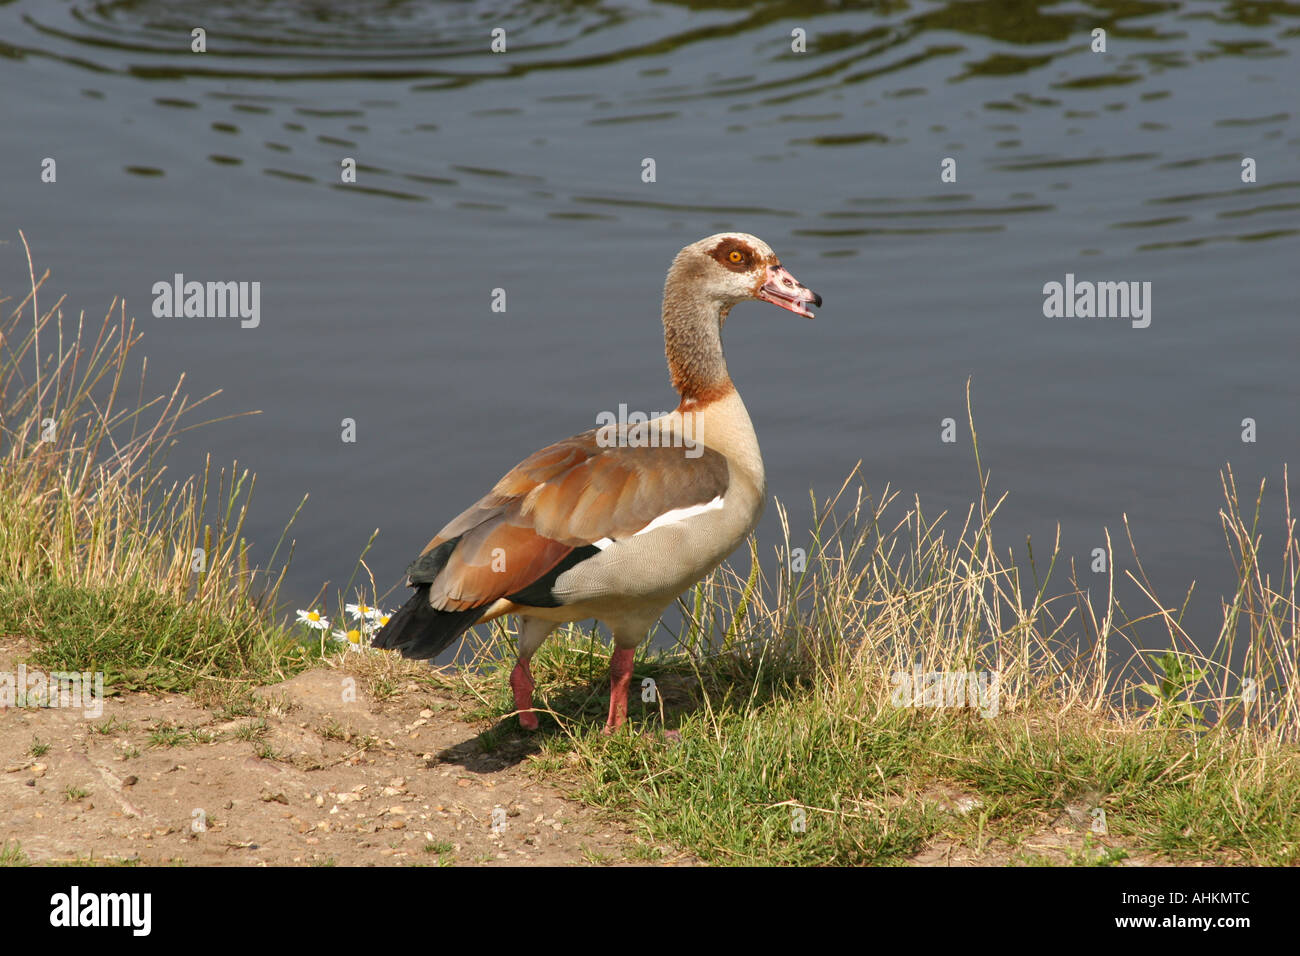 egyptian goose a type of duck swimming on pond stock photo 8284811